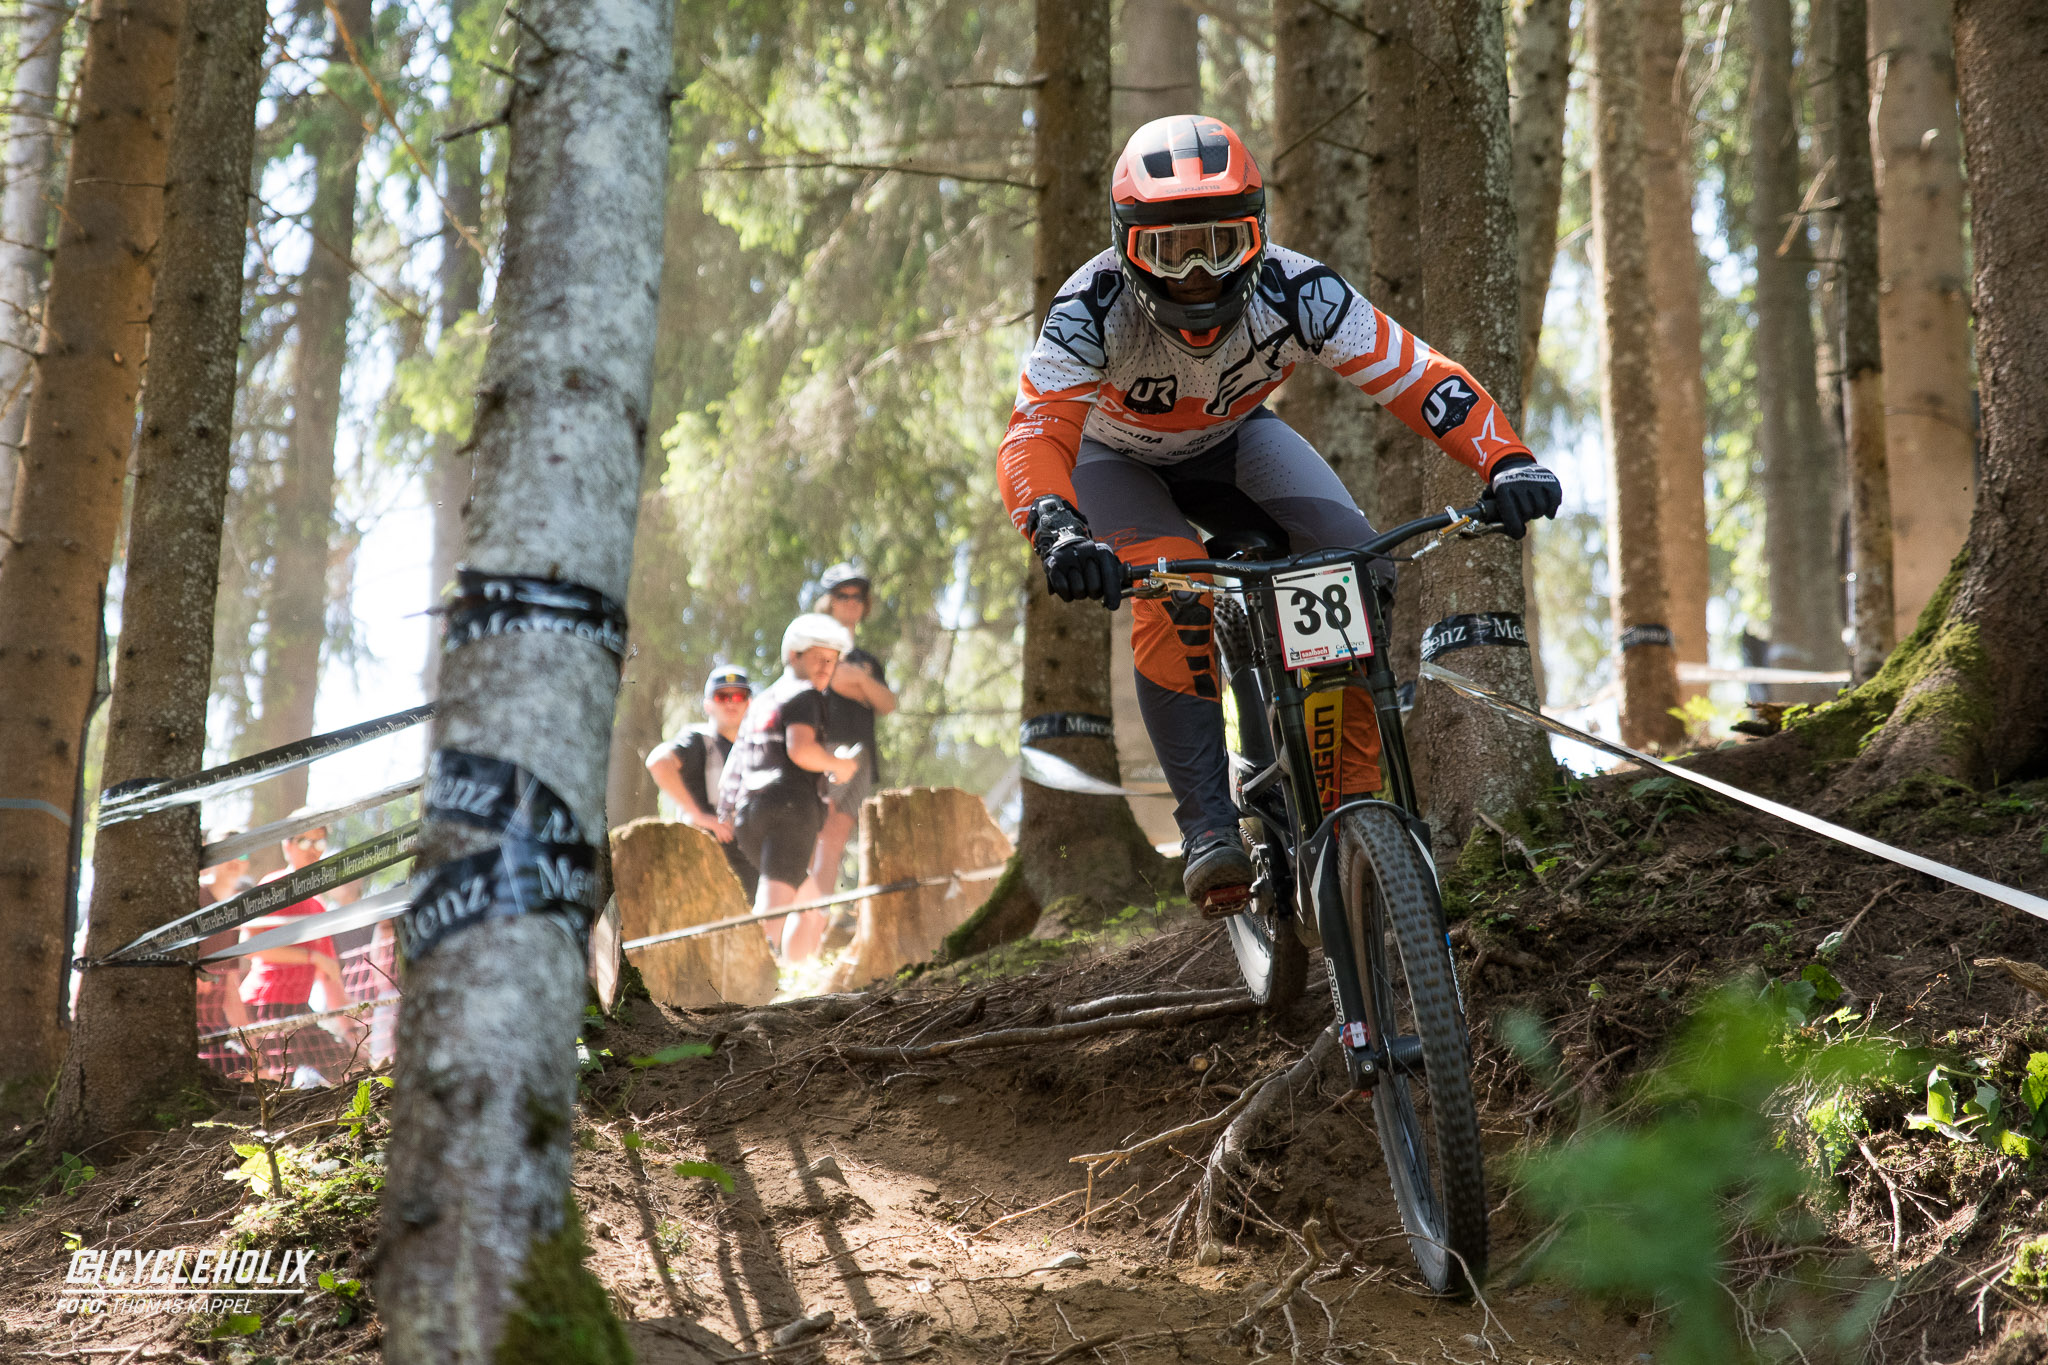 2019 Downhill Worldcup Leogang Finale Action 24